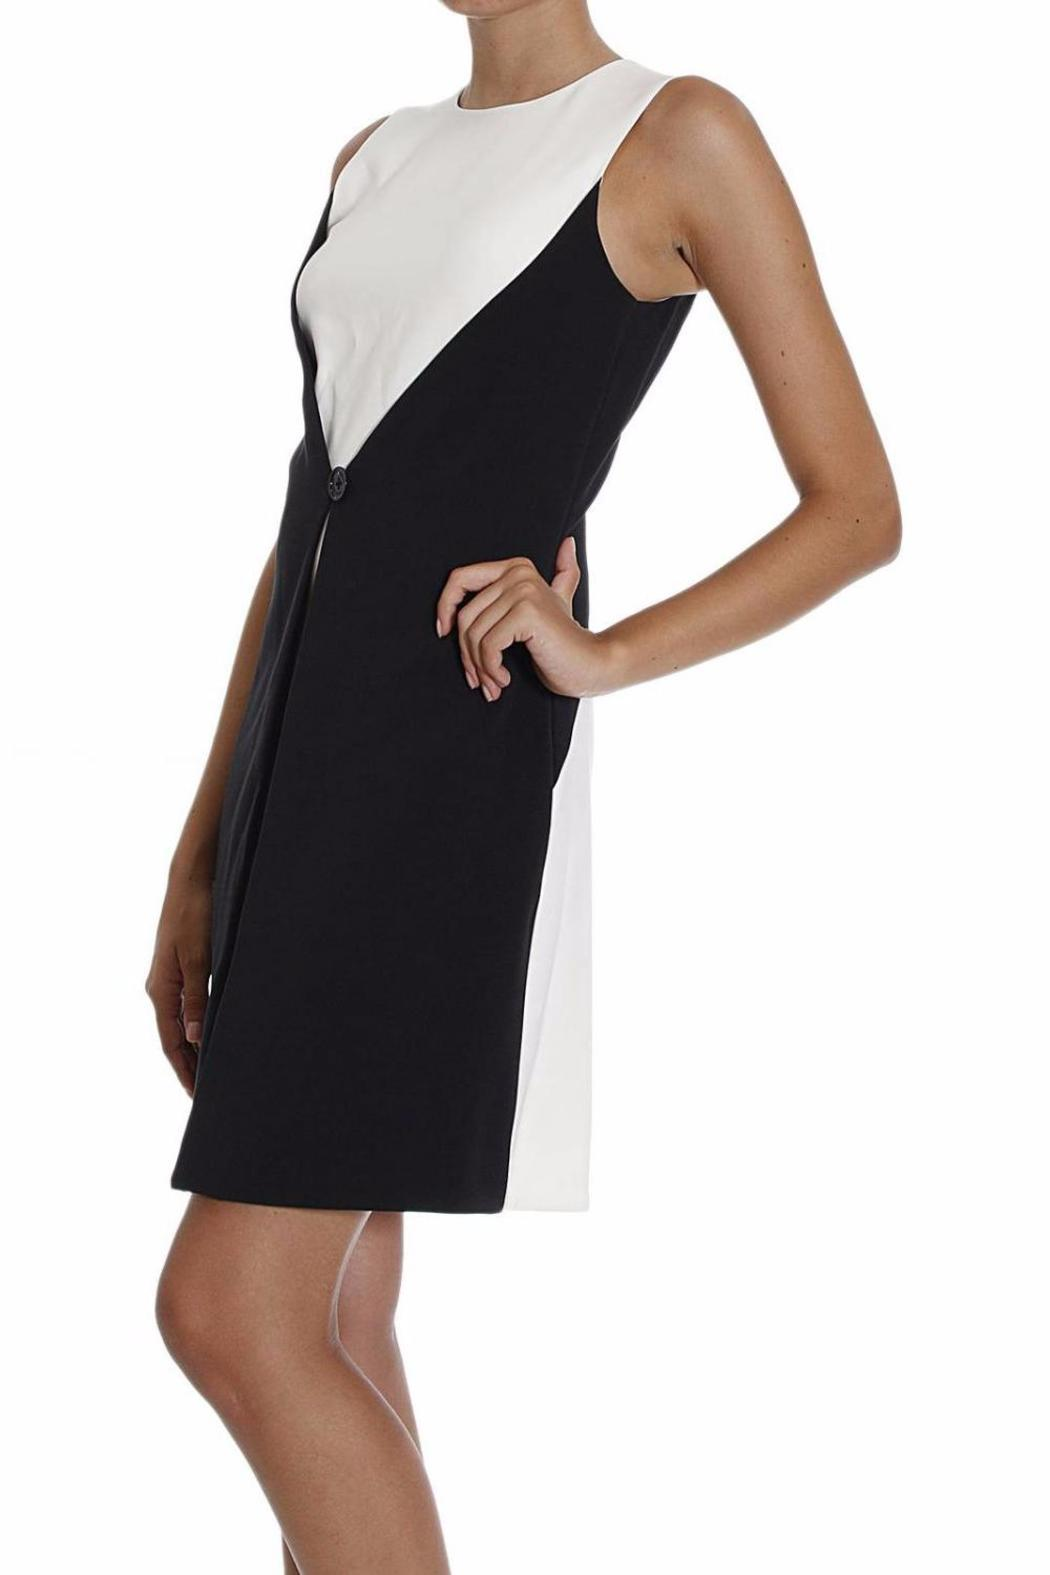 Michael by Michael Kors Color Block Buttoned Dress - Front Full Image